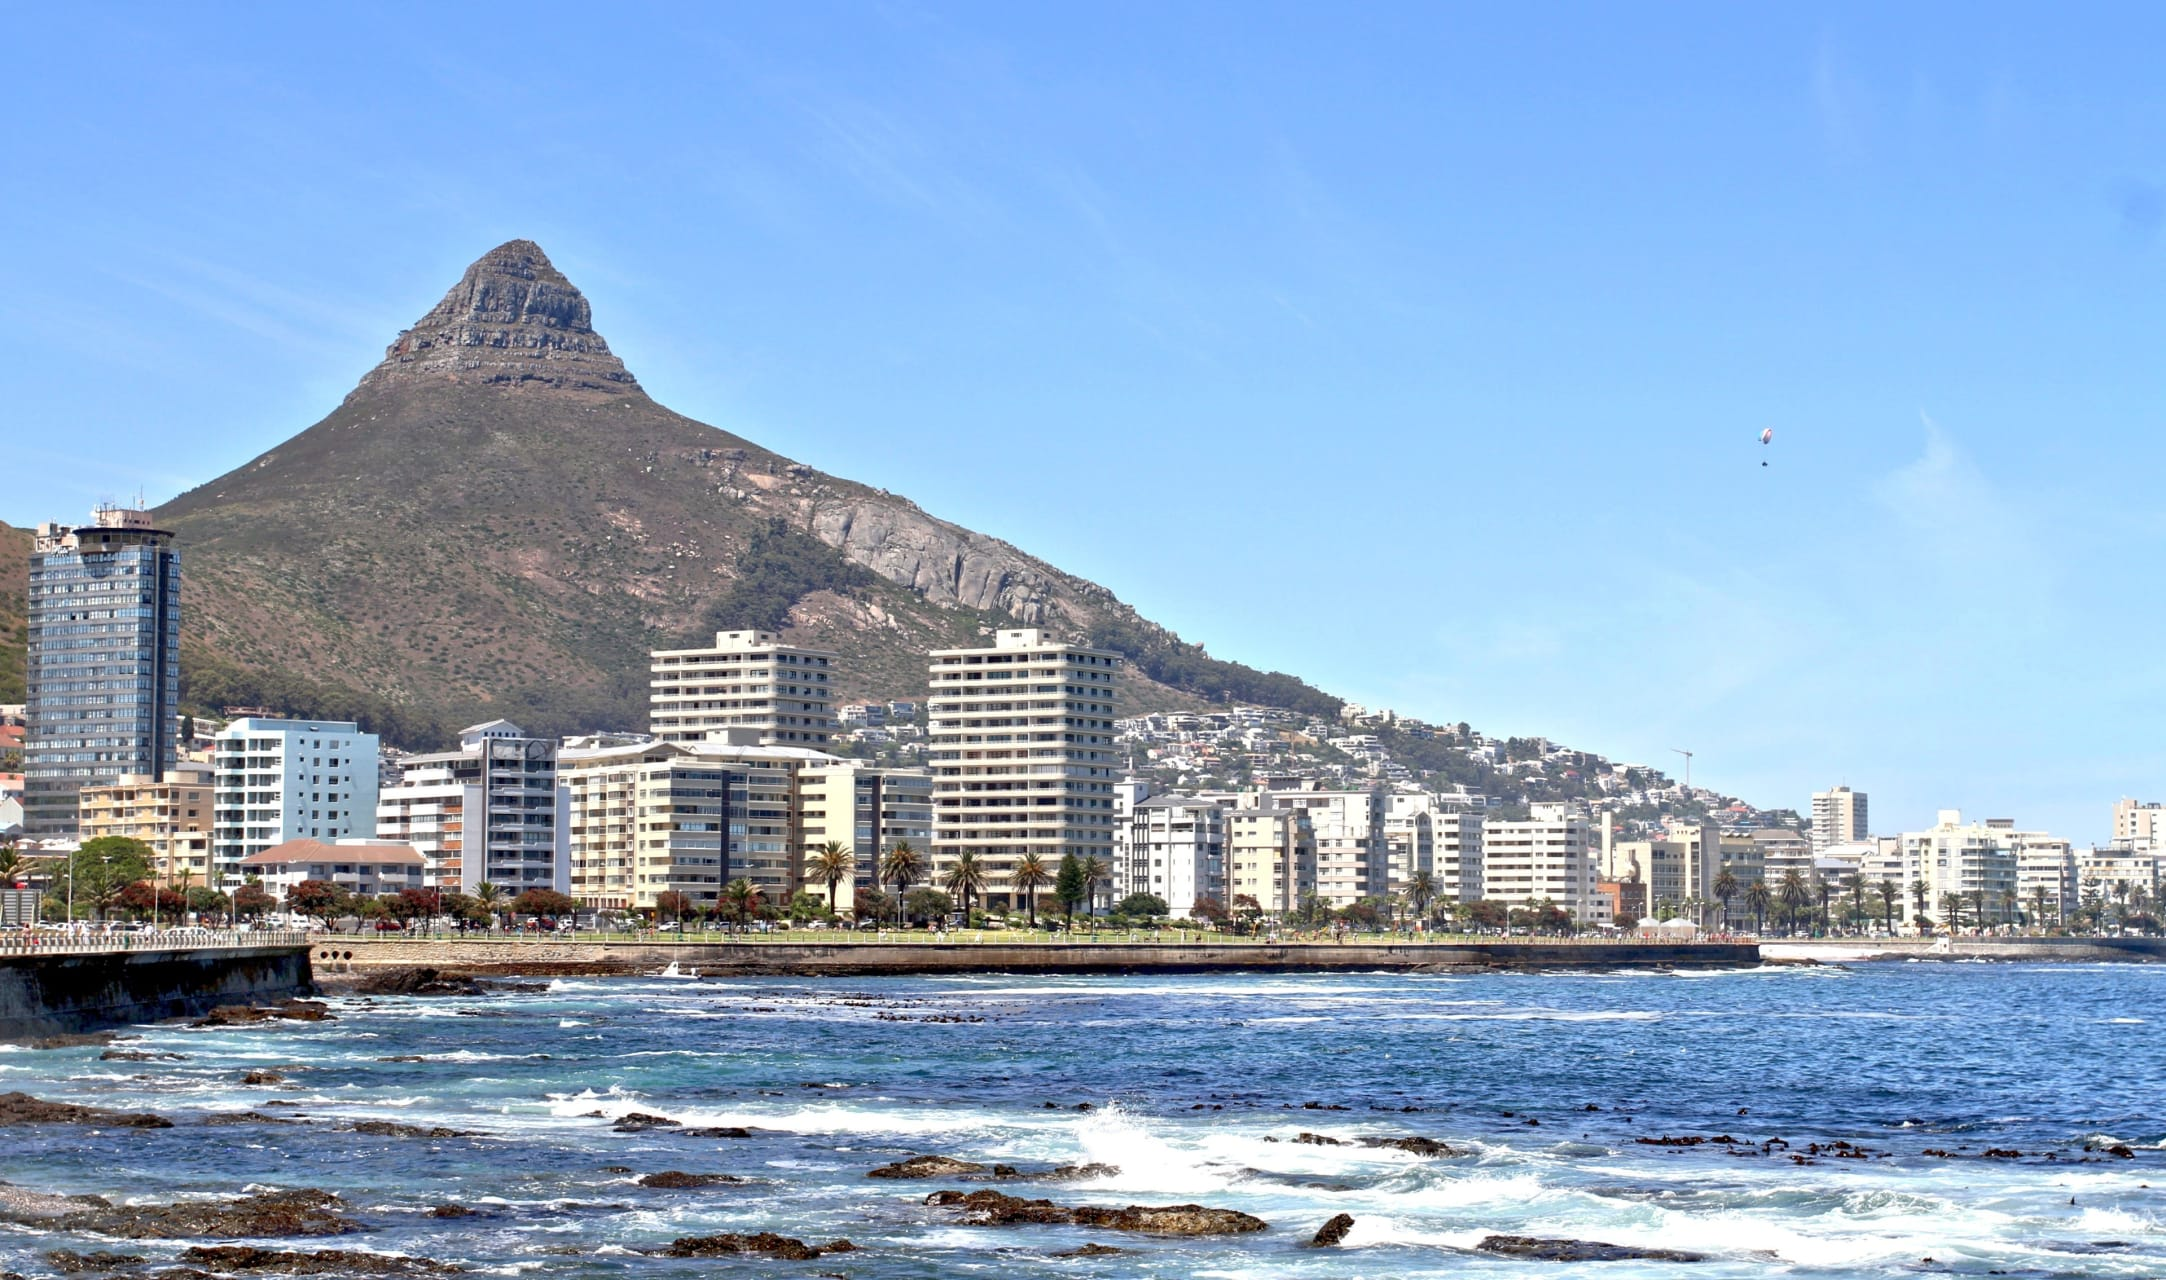 Cape Town - Cycling the Promenade